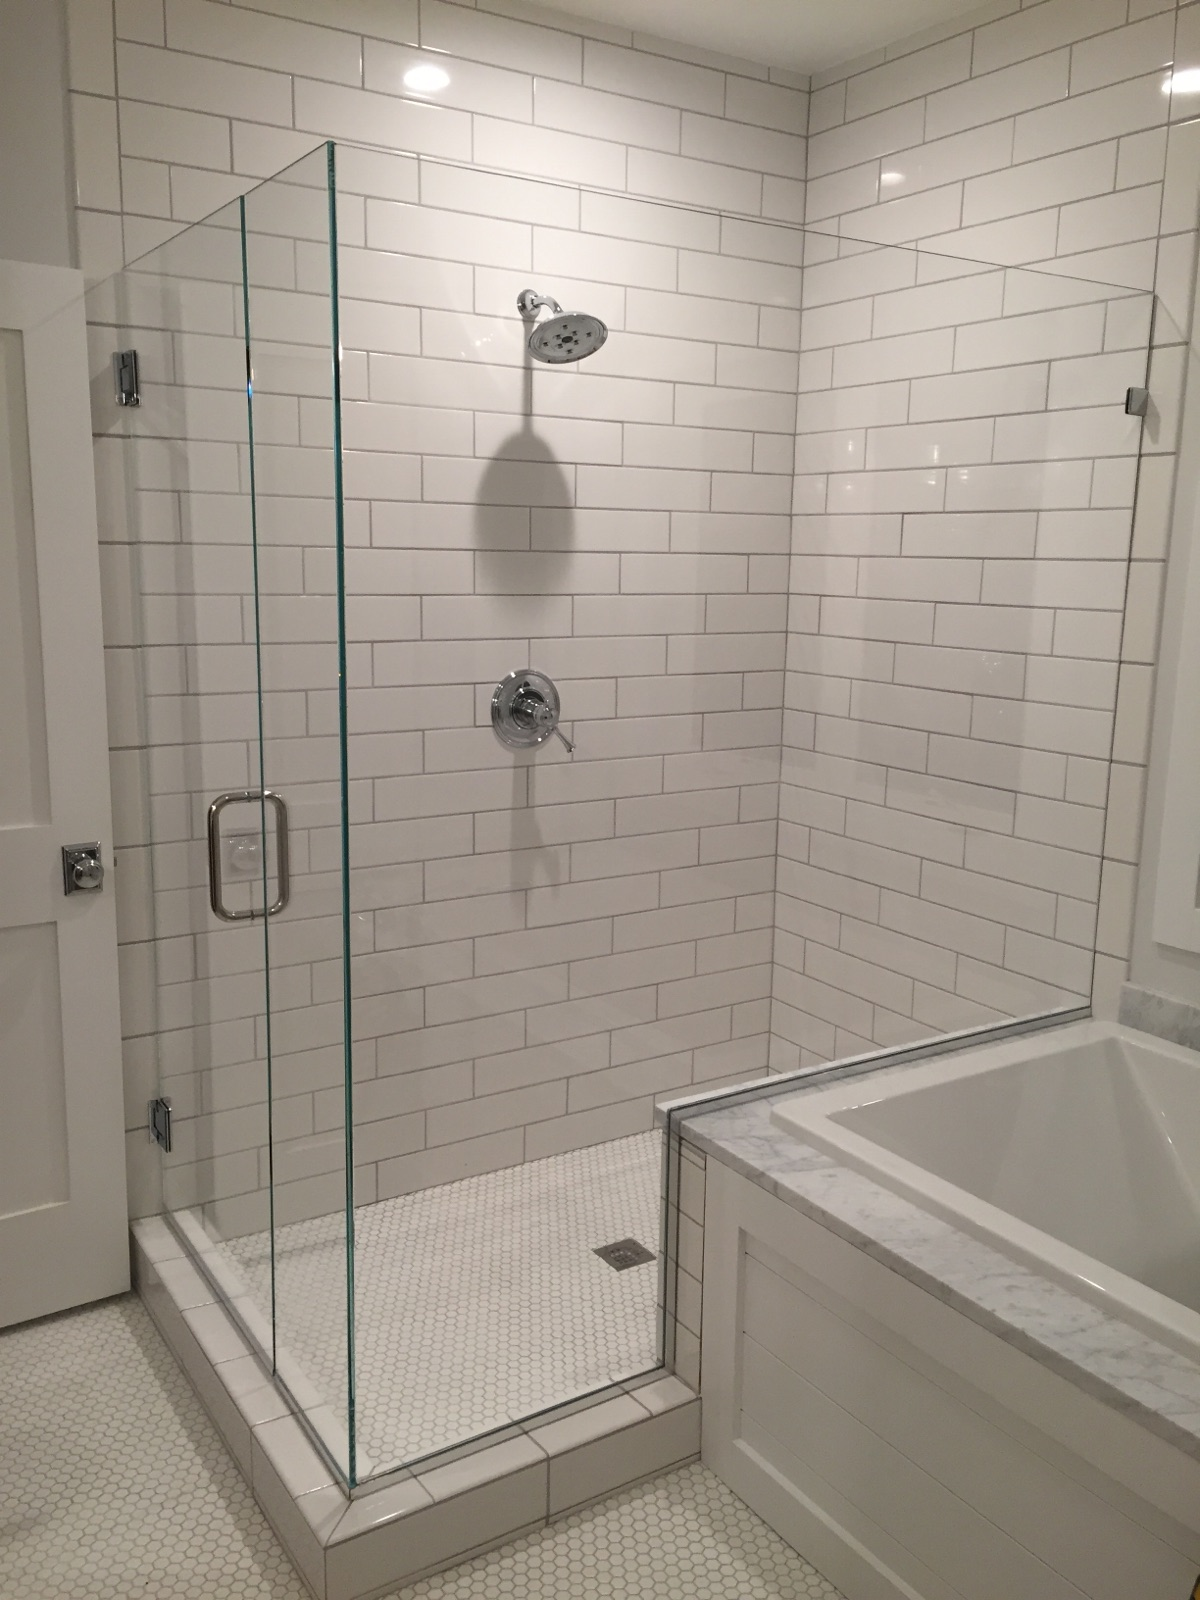 Euro style with Low Iron glass to accent the white tile